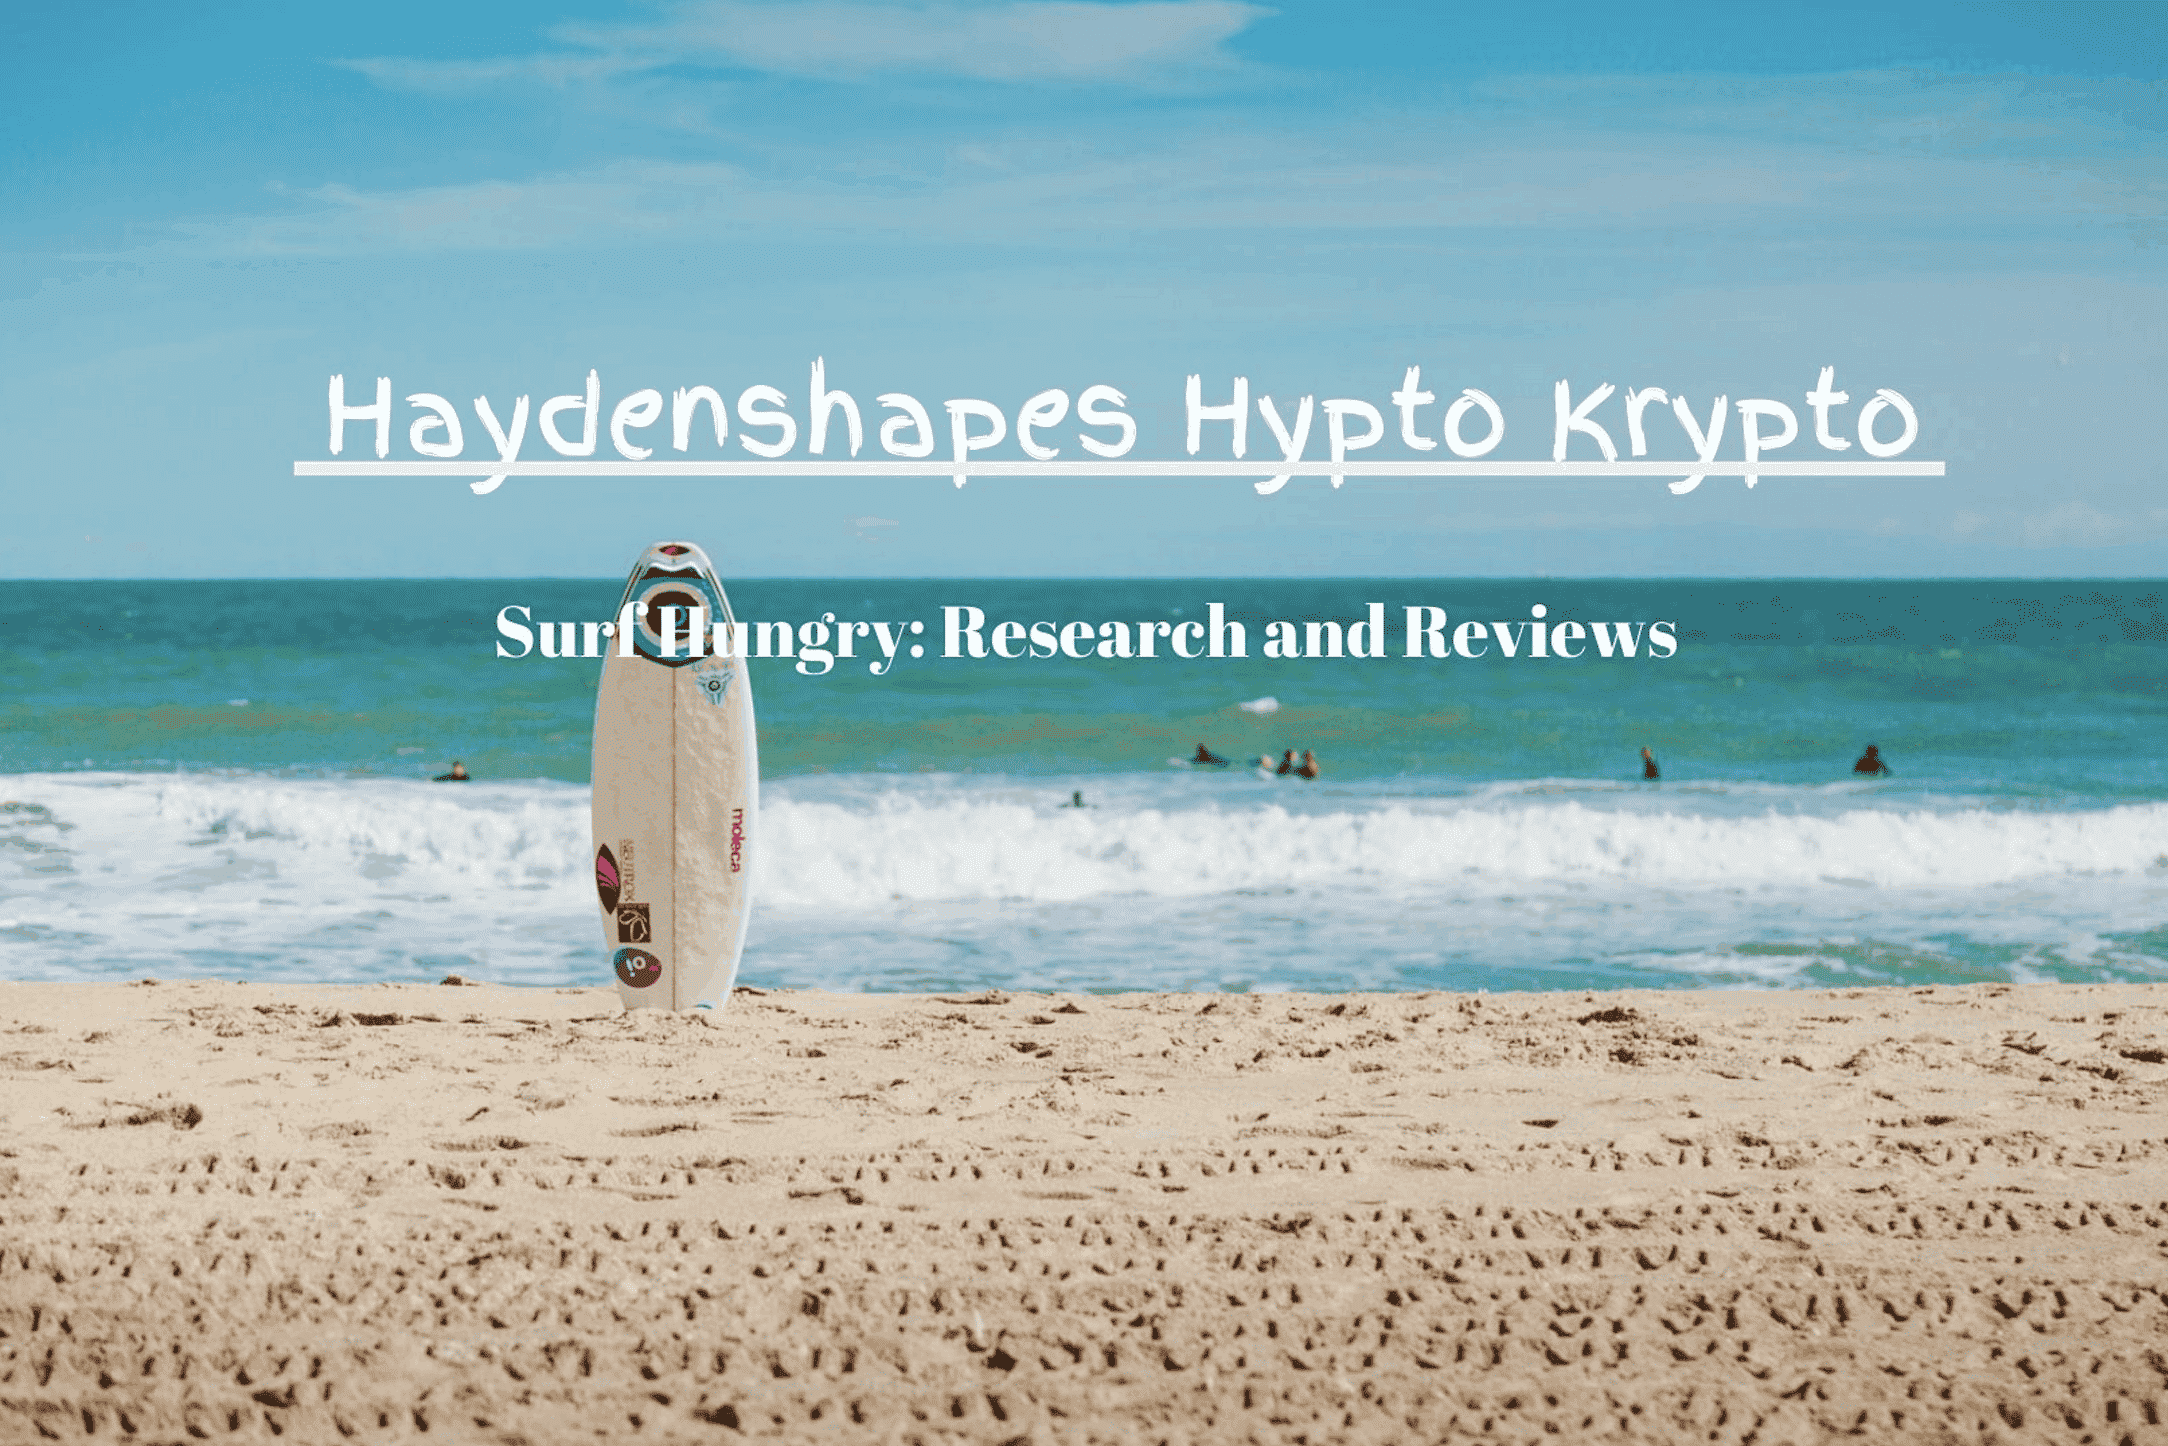 haydenshapes hypto krypto